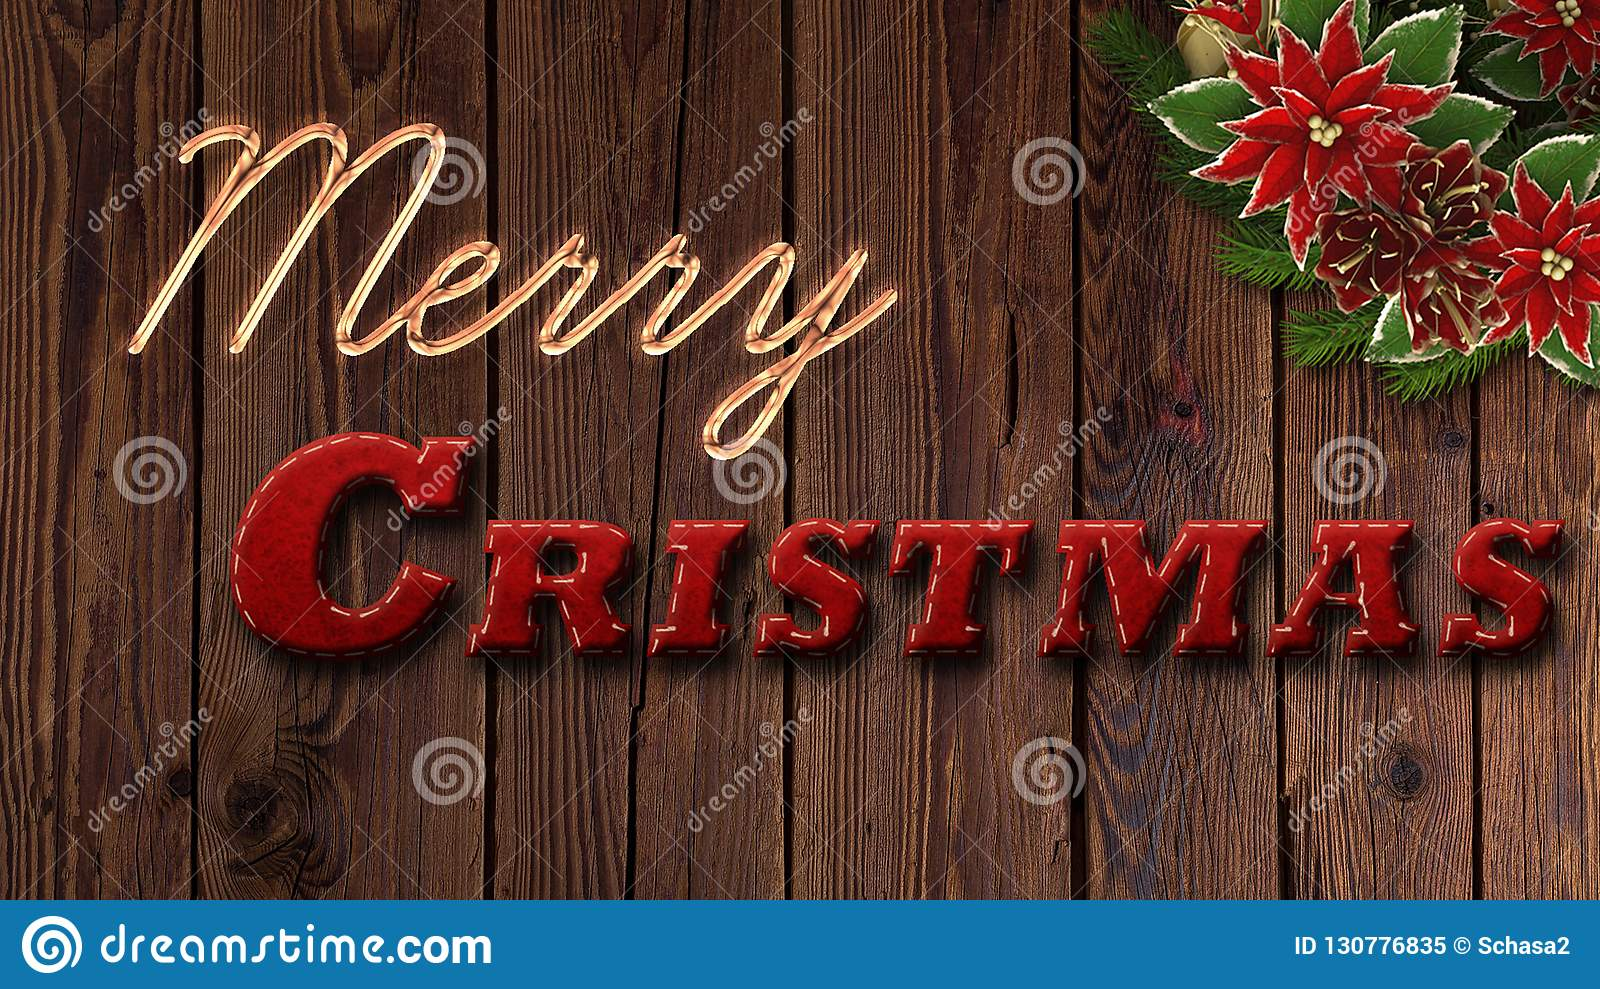 Country Christmas Background.Country Christmas Background Stock Image Image Of